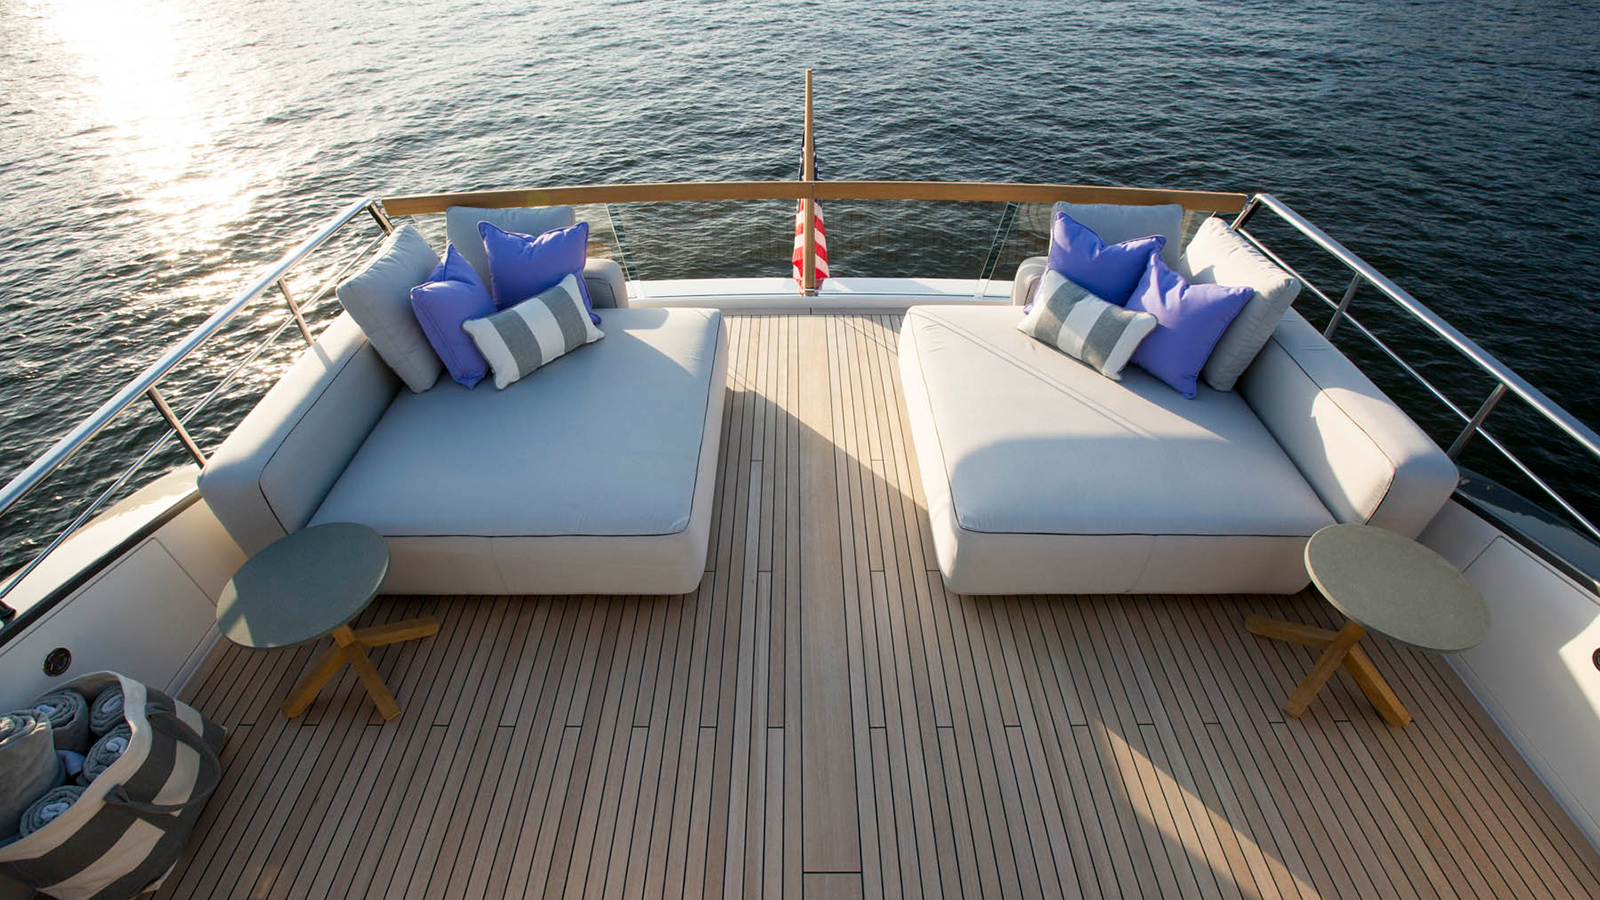 aft-view-from-the-upper-deck-of-the-sanlorenzo-sl78-sag-harbor-edition